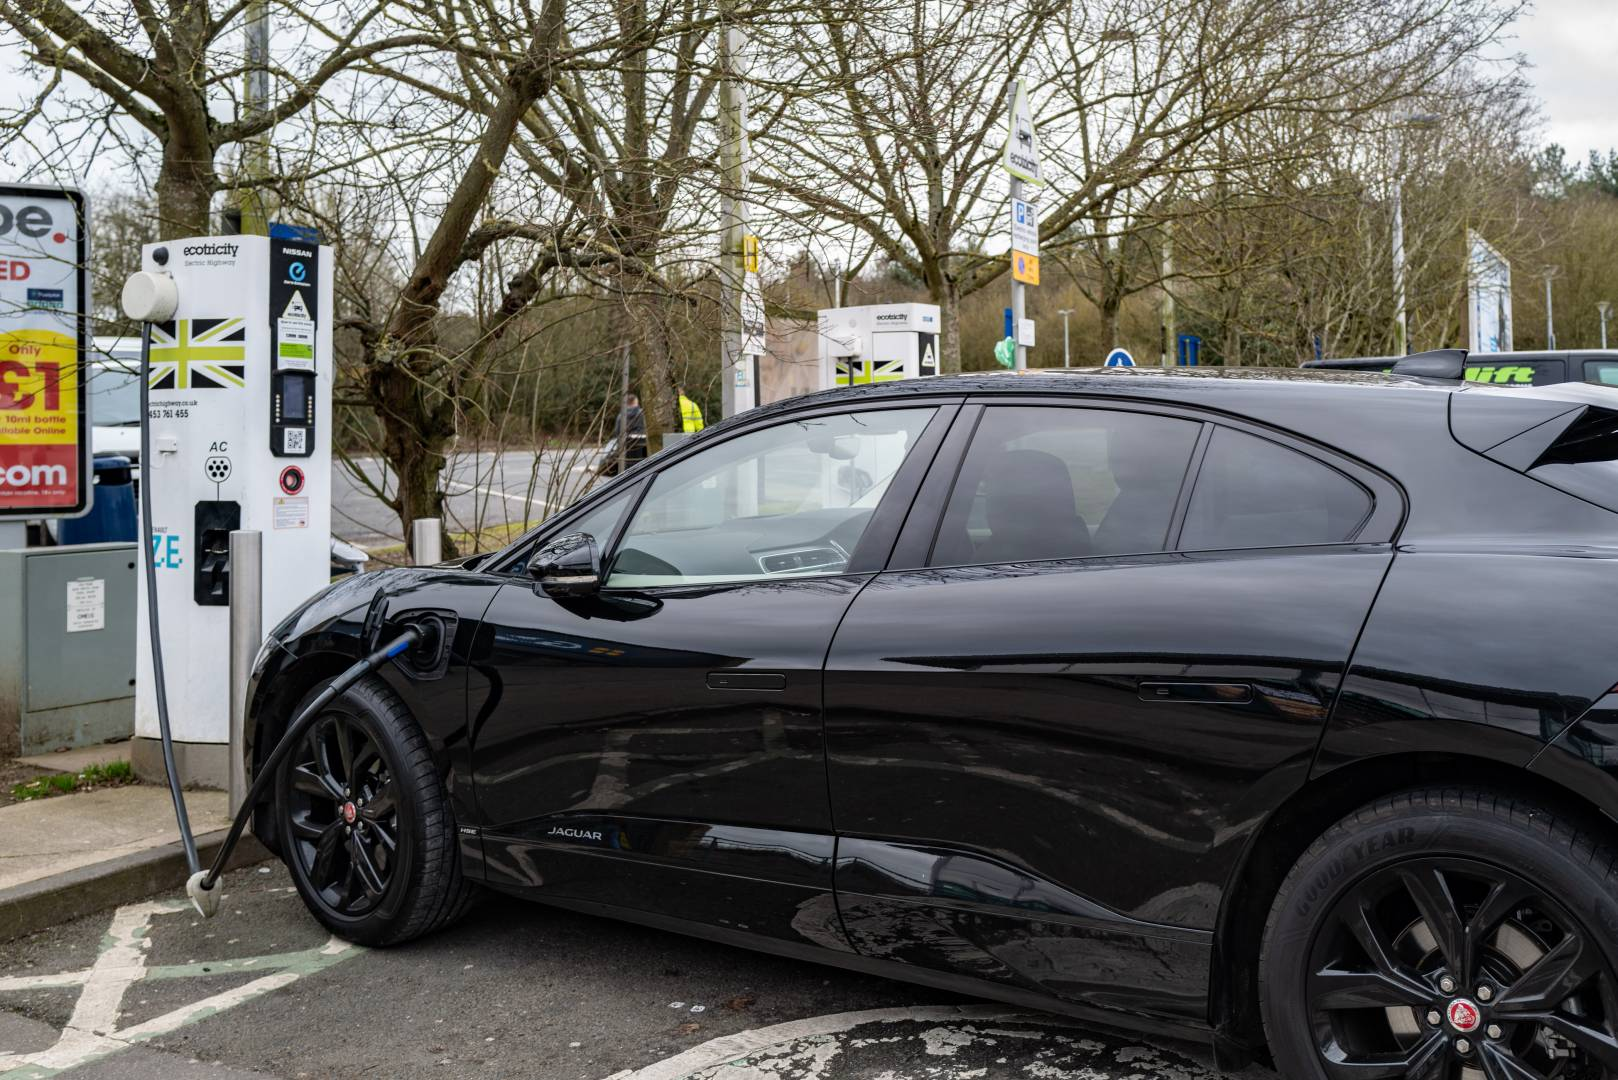 Tucked away in a corner of the car park at the busy Cherwell Valley services on the M40. Just two chargers for all the world's EVs (except Tesla, that is). And one of the two is a miserable and pretty useless 72.kWh device. A total waste of space.